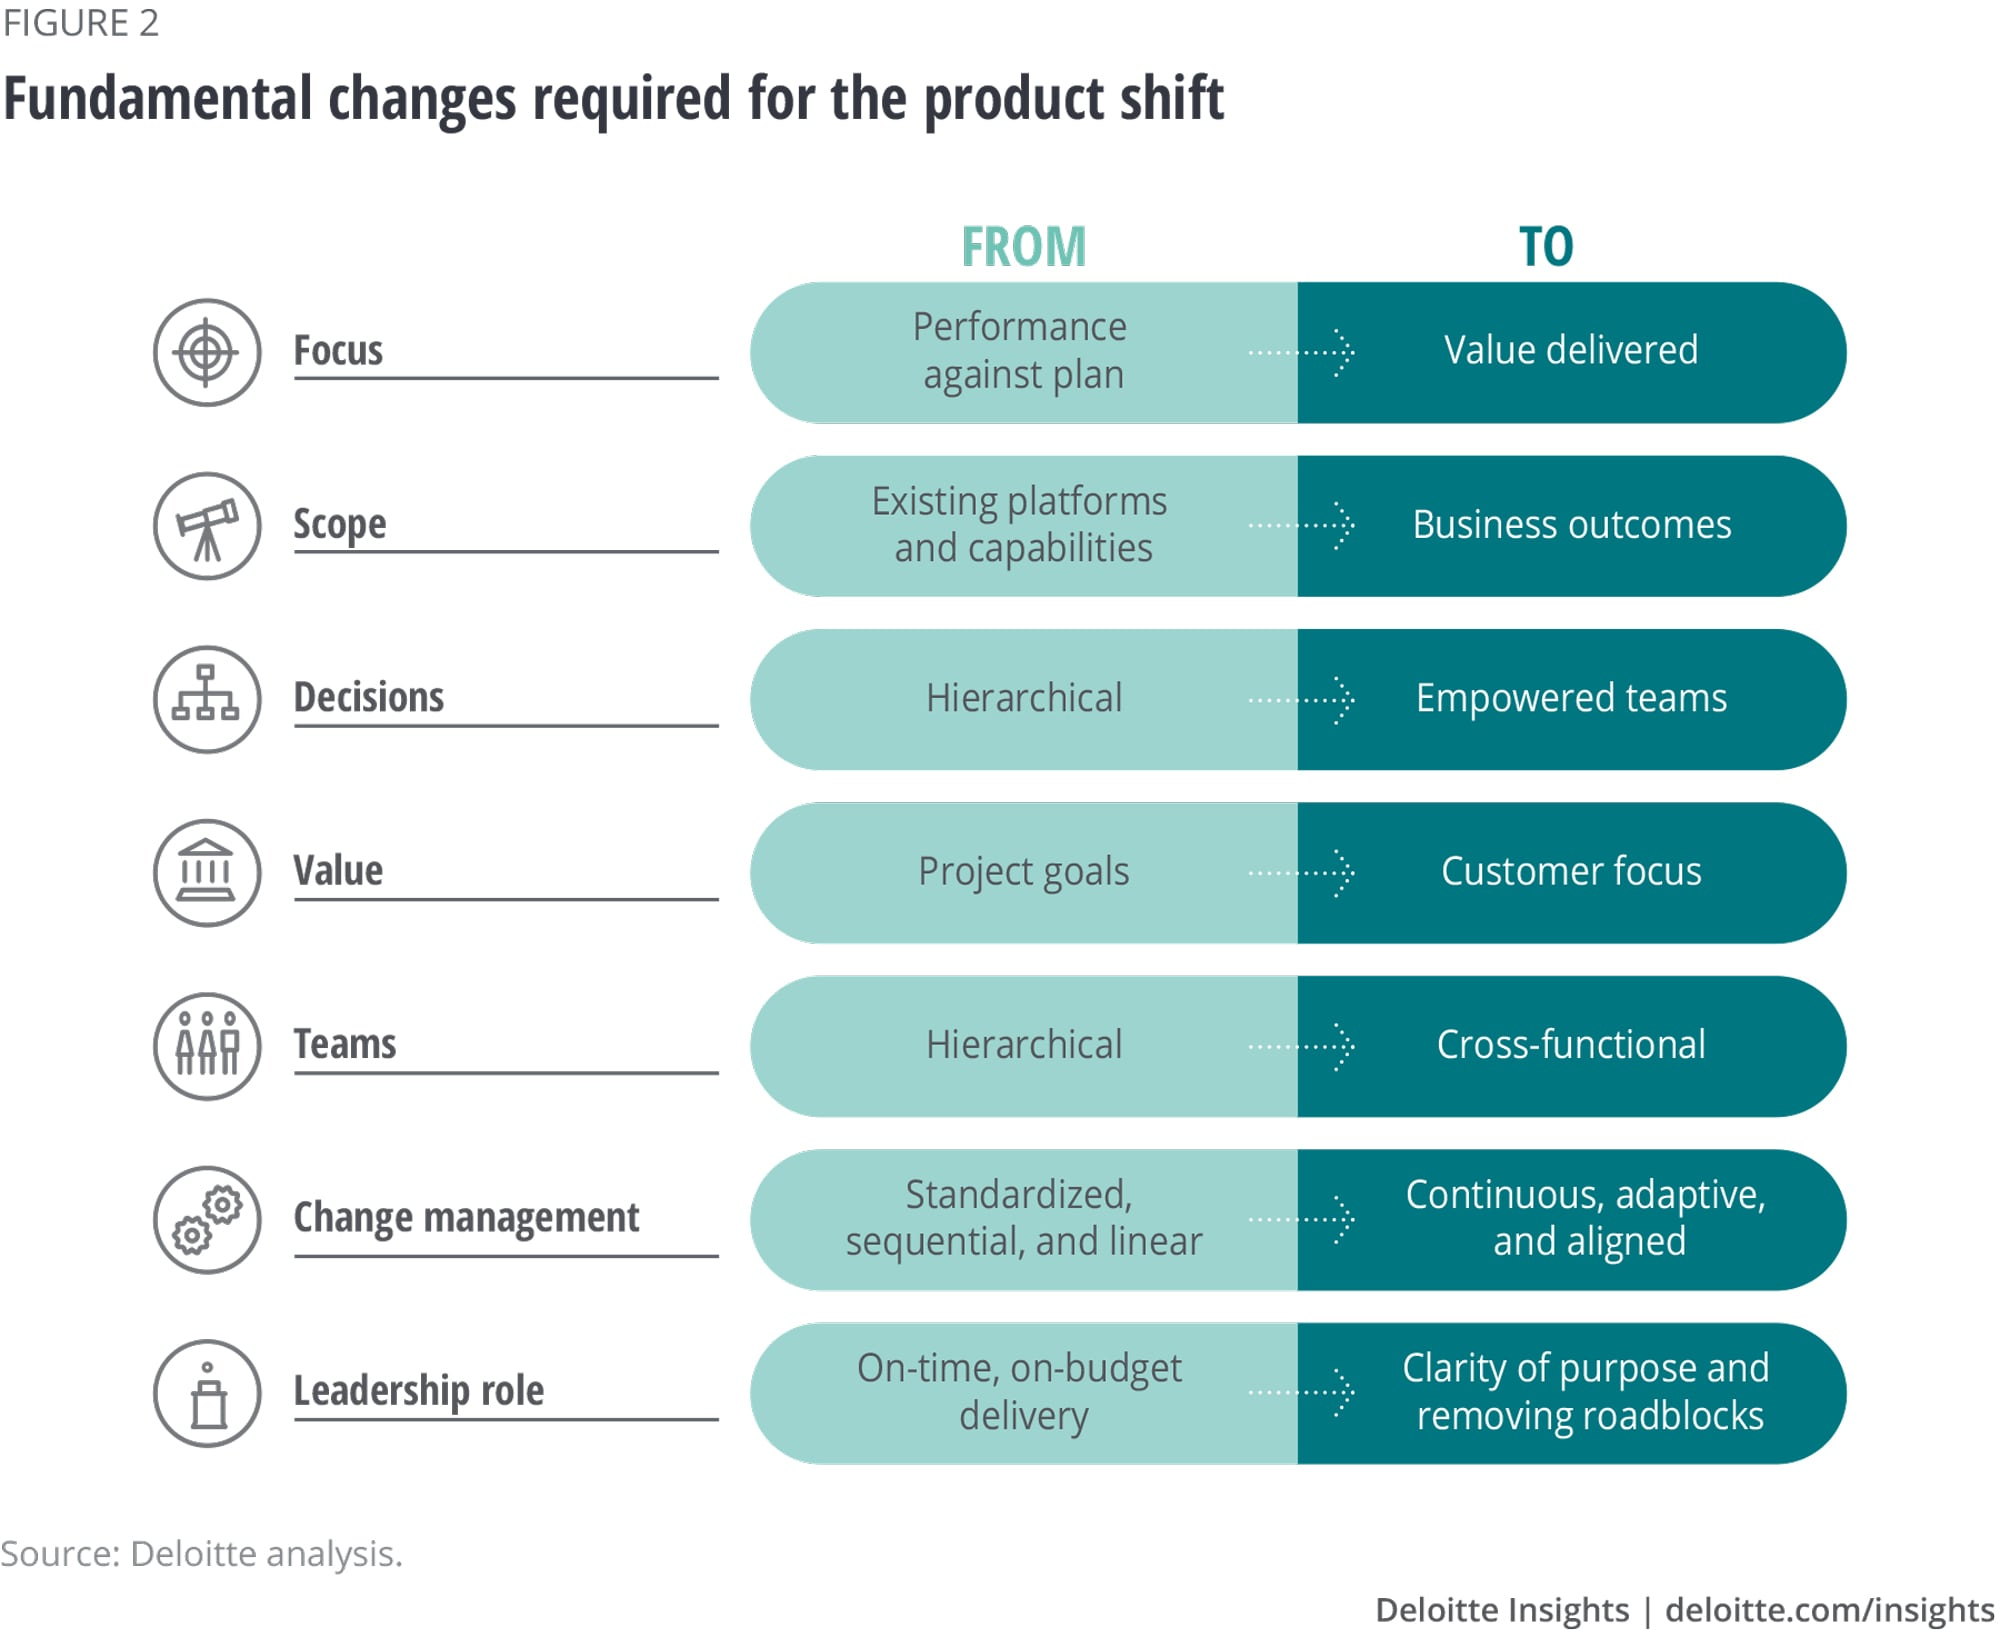 In the shift to a product mindset, change what gets measured